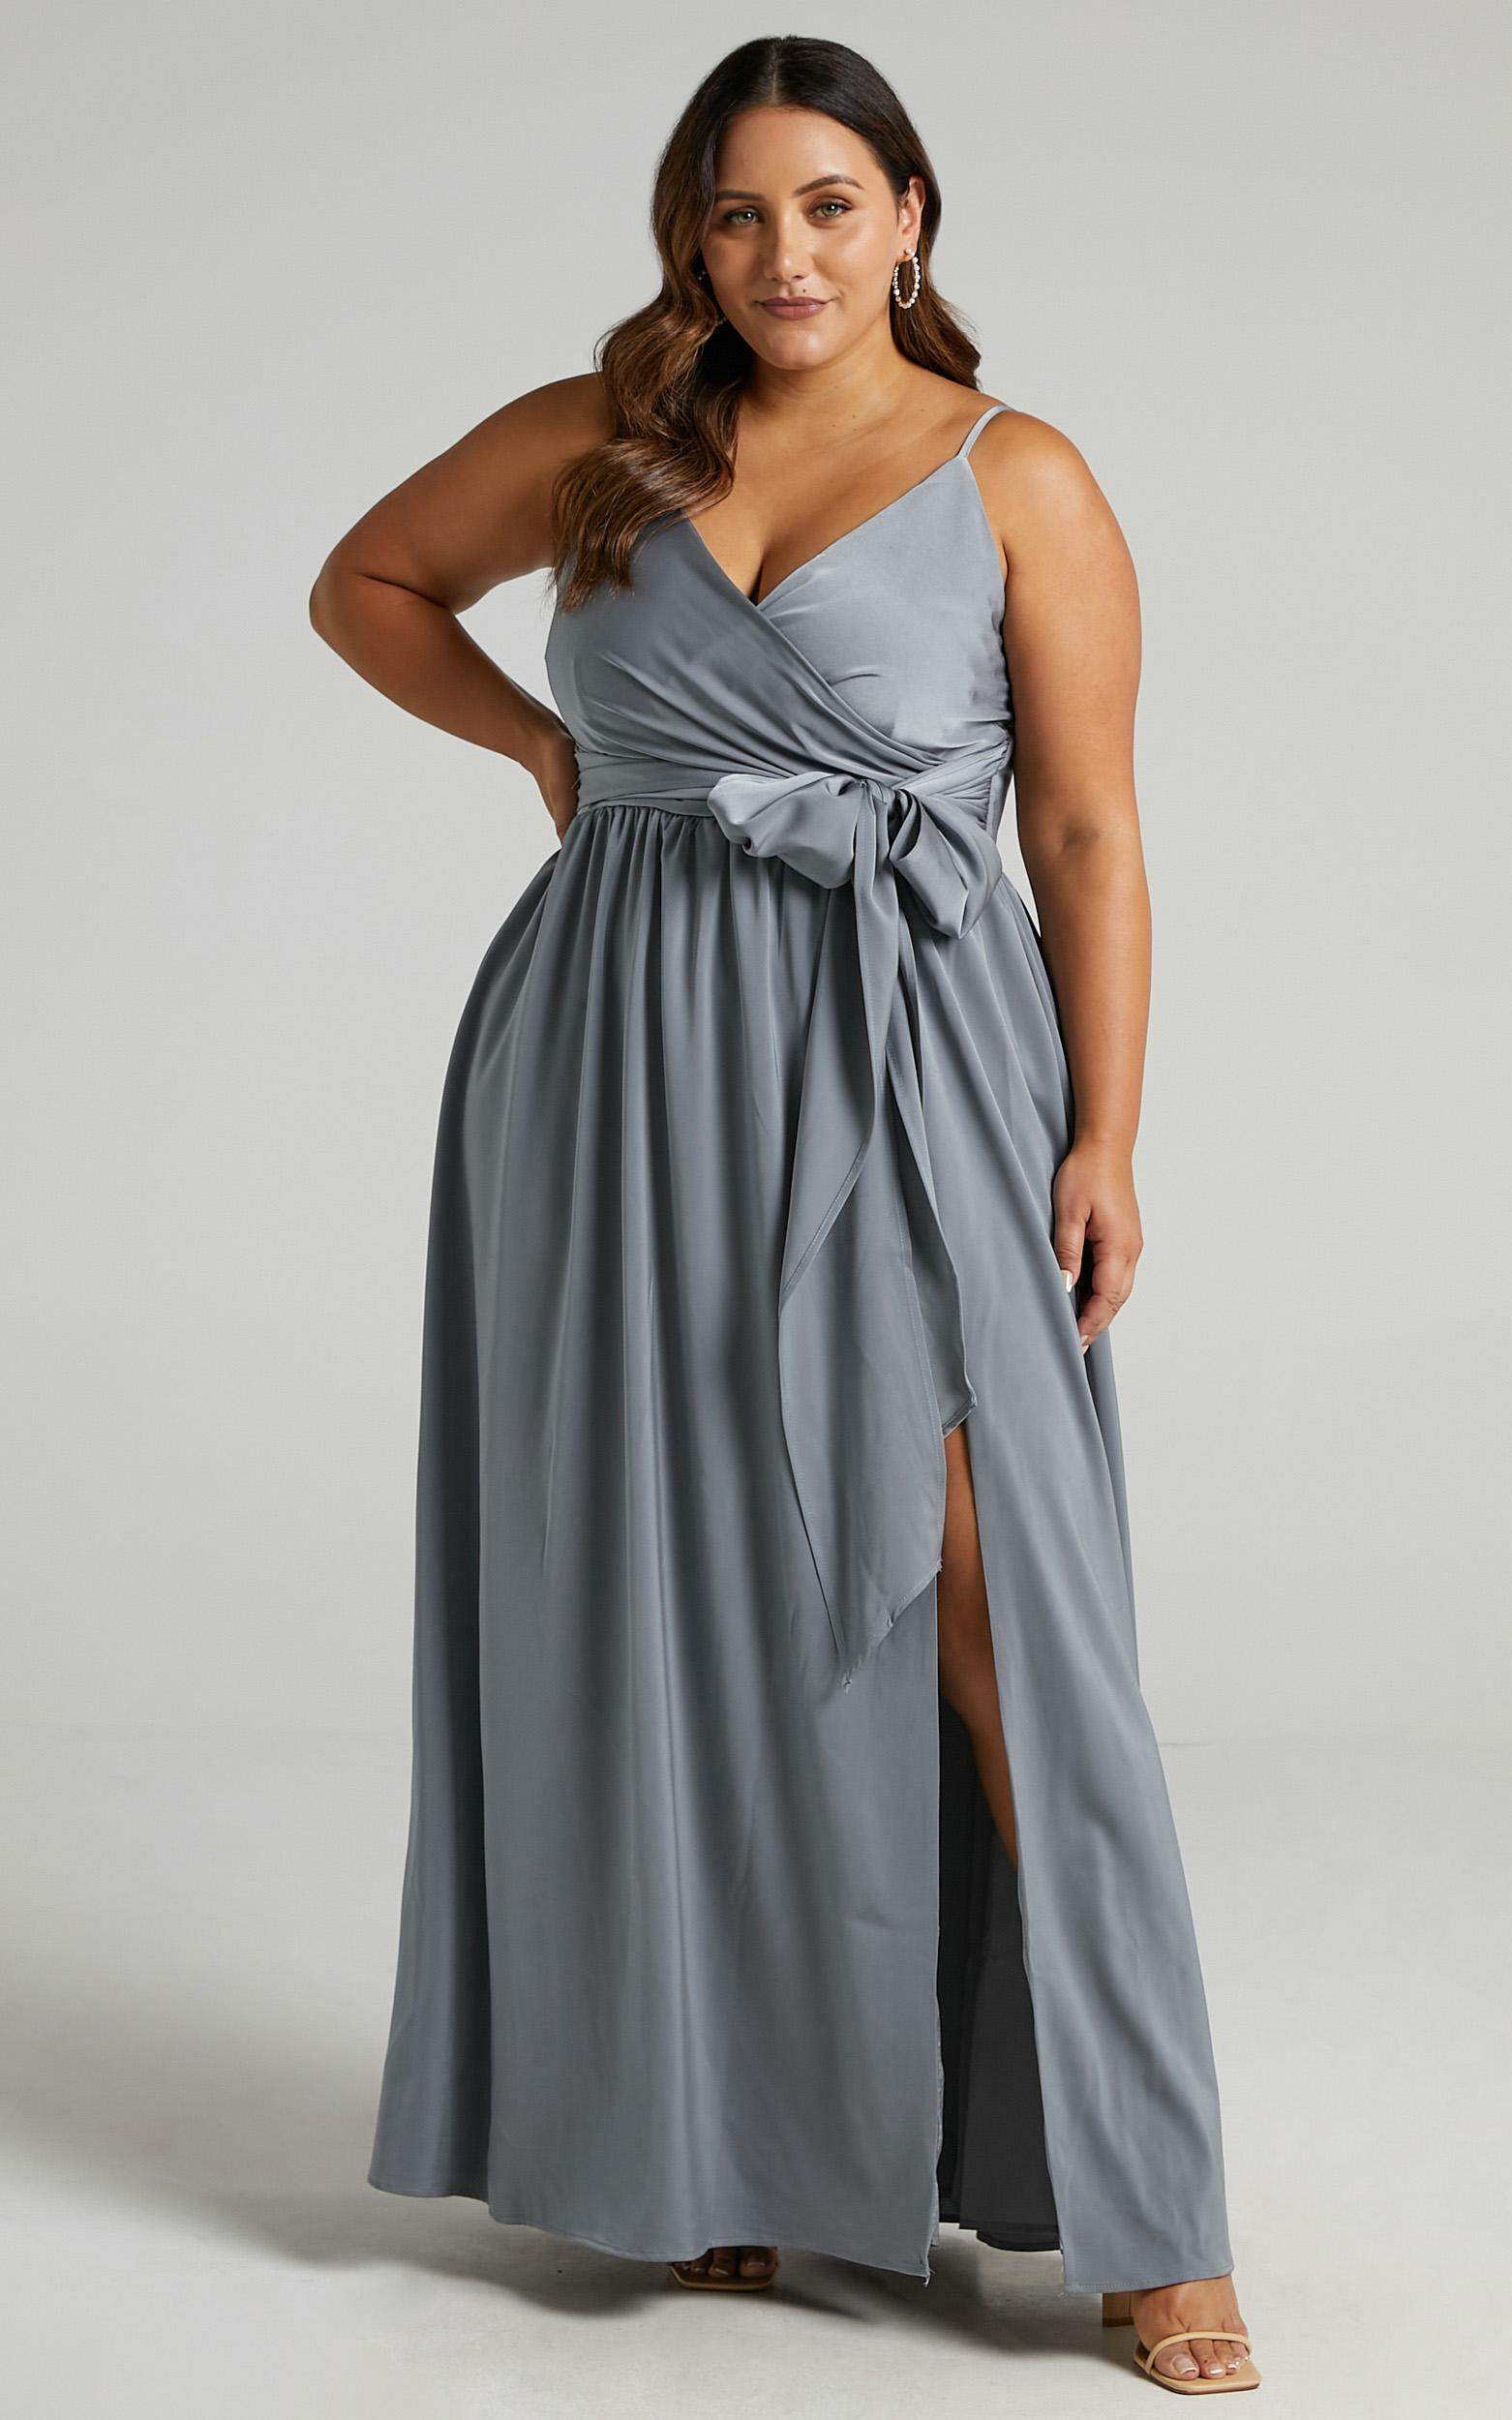 Revolve Around Me Dress in Dusty Blue - 20, BLU2, hi-res image number null